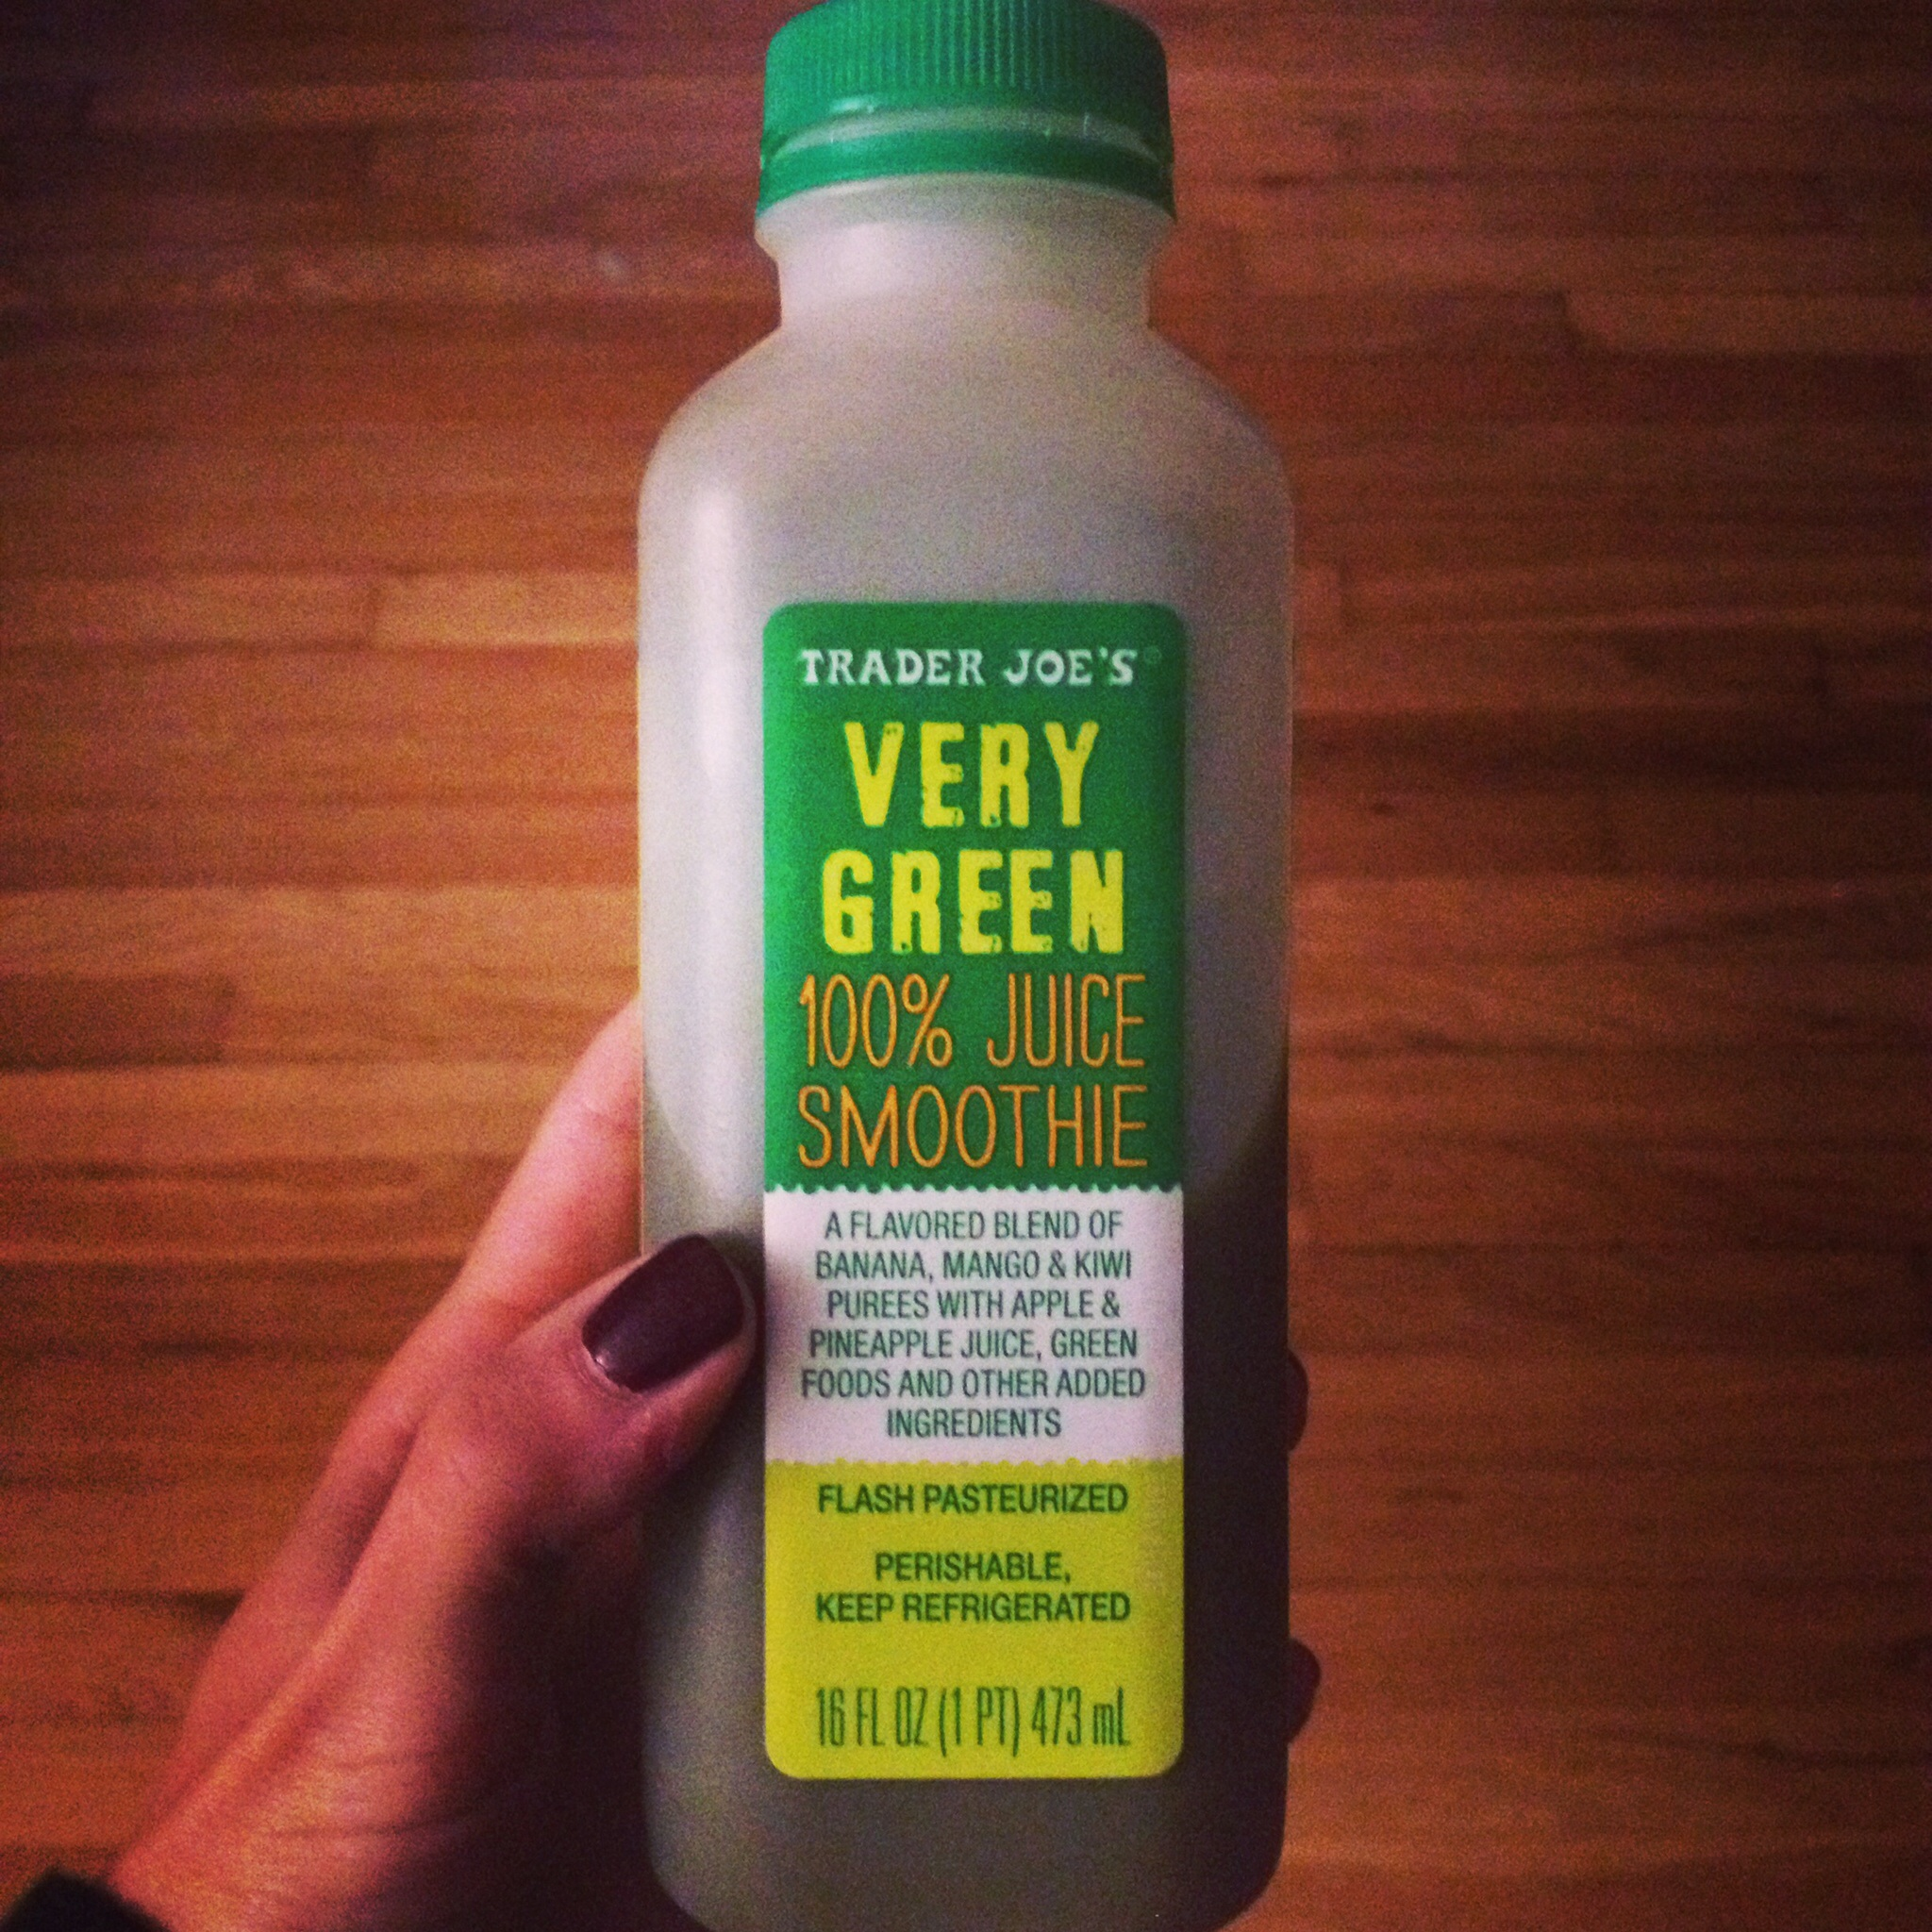 Trader Joe's Very Green Smoothie